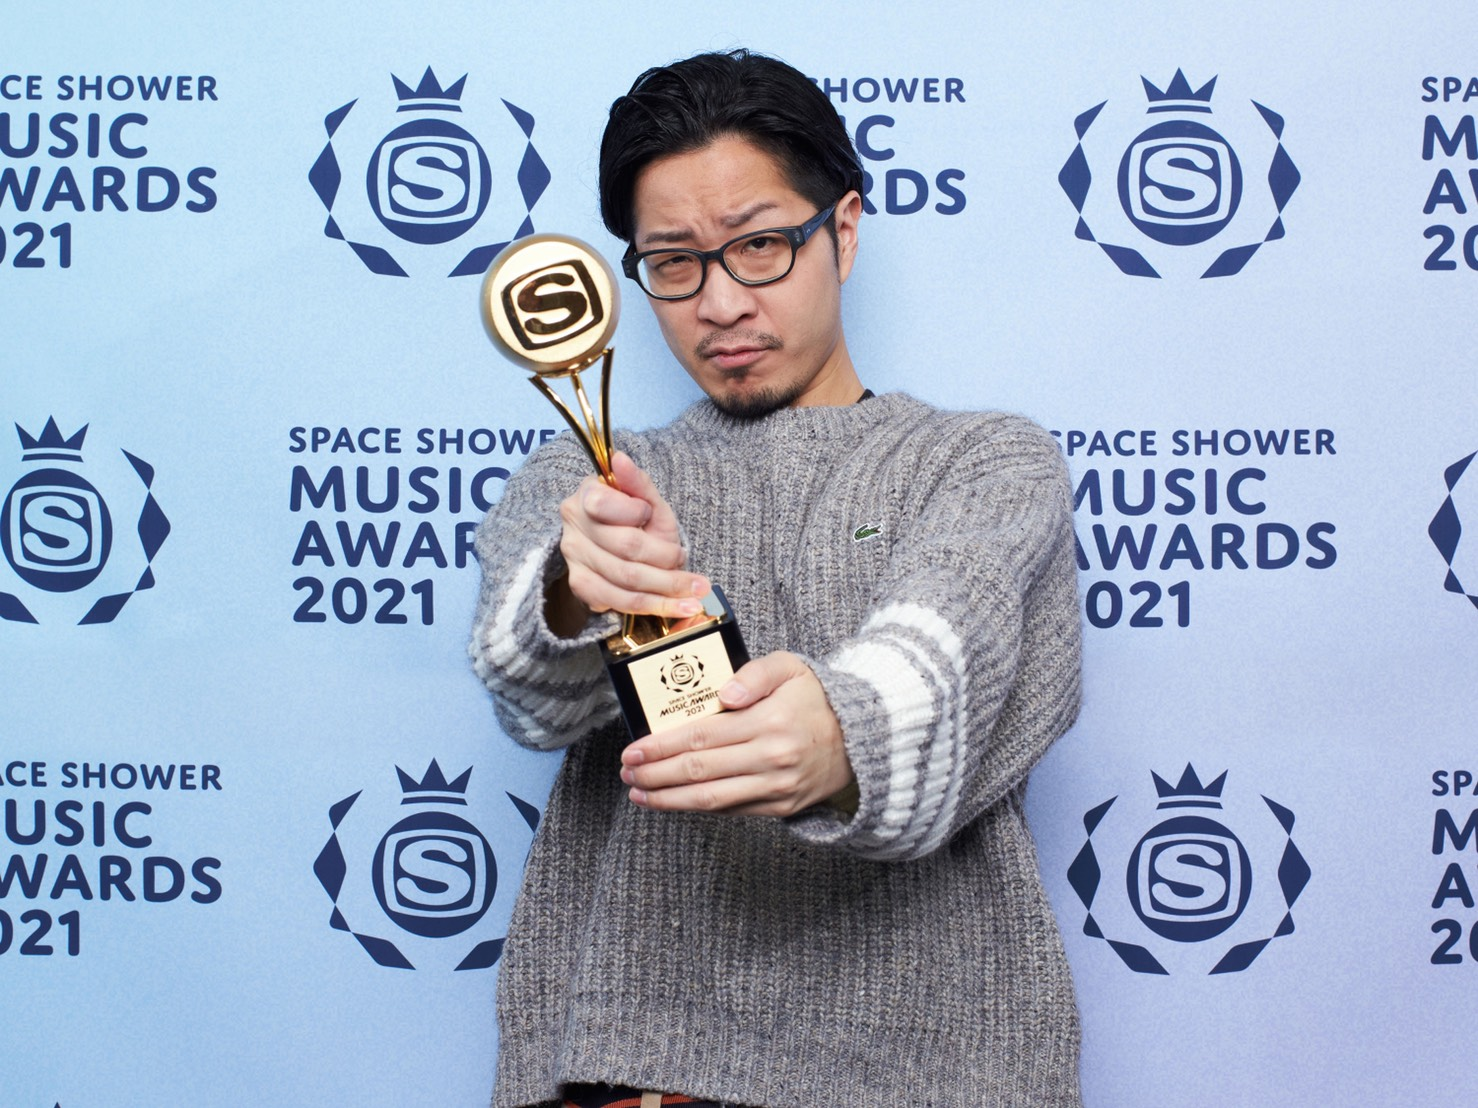 SPACE SHOWER MUSIC AWARDS 2021にて、PUNPEEが「BEST LIVE STREAMING」を受賞。